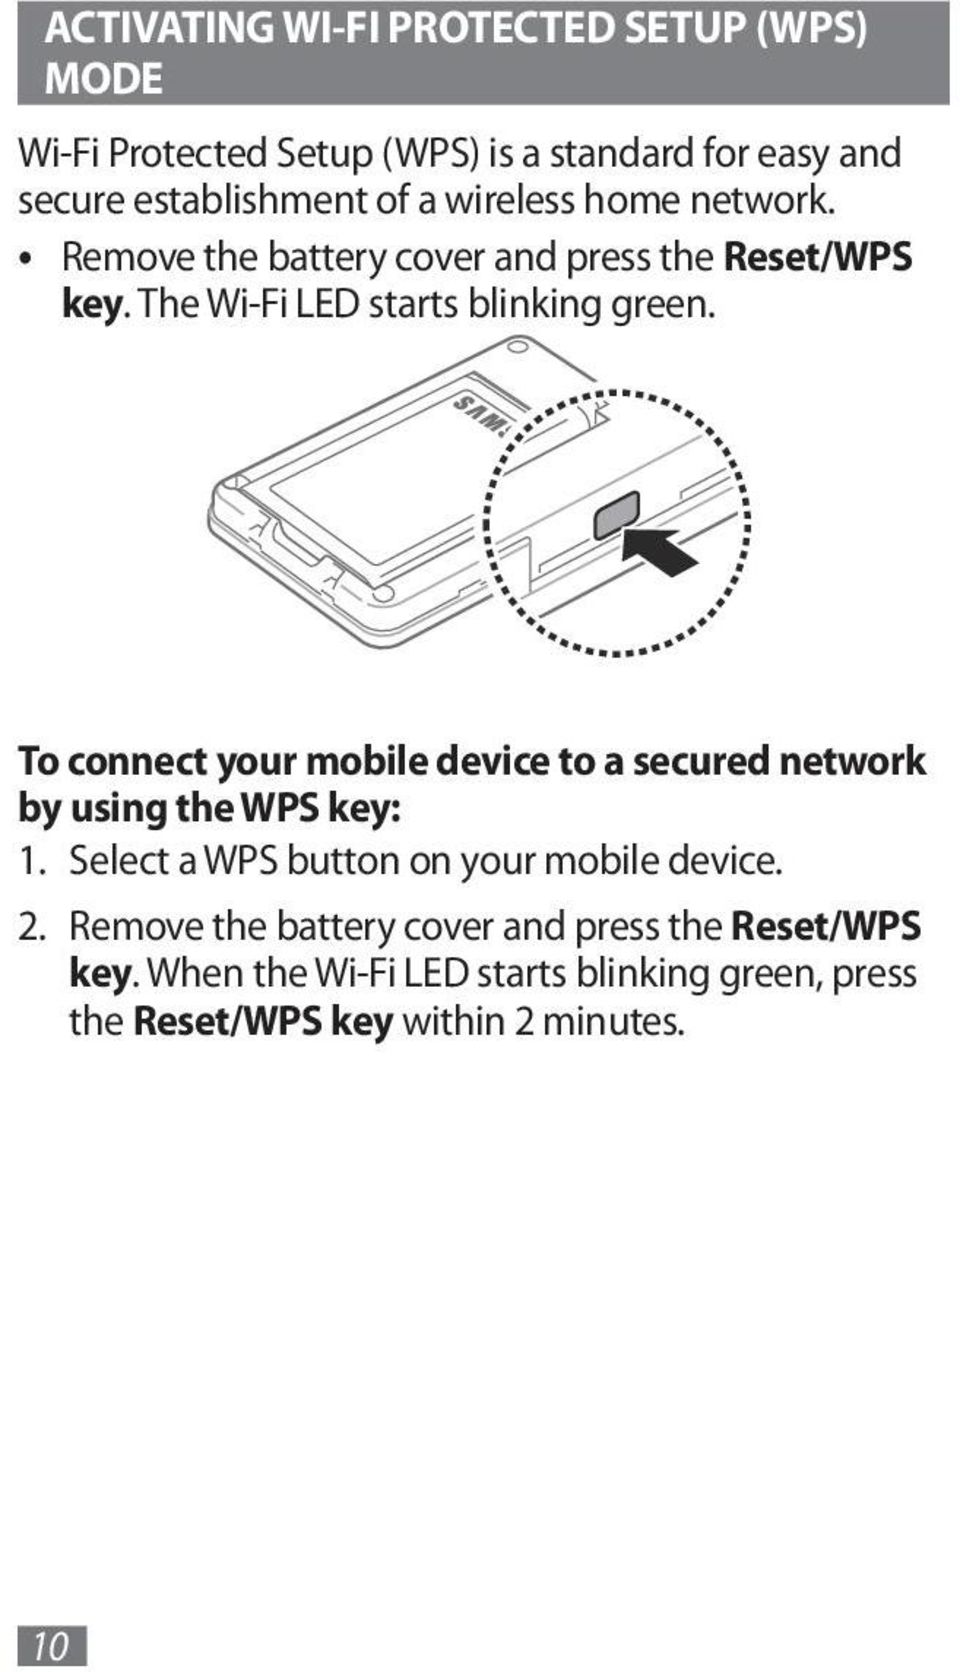 To connect your mobile device to a secured network by using the WPS key: 1. Select a WPS button on your mobile device. 2.